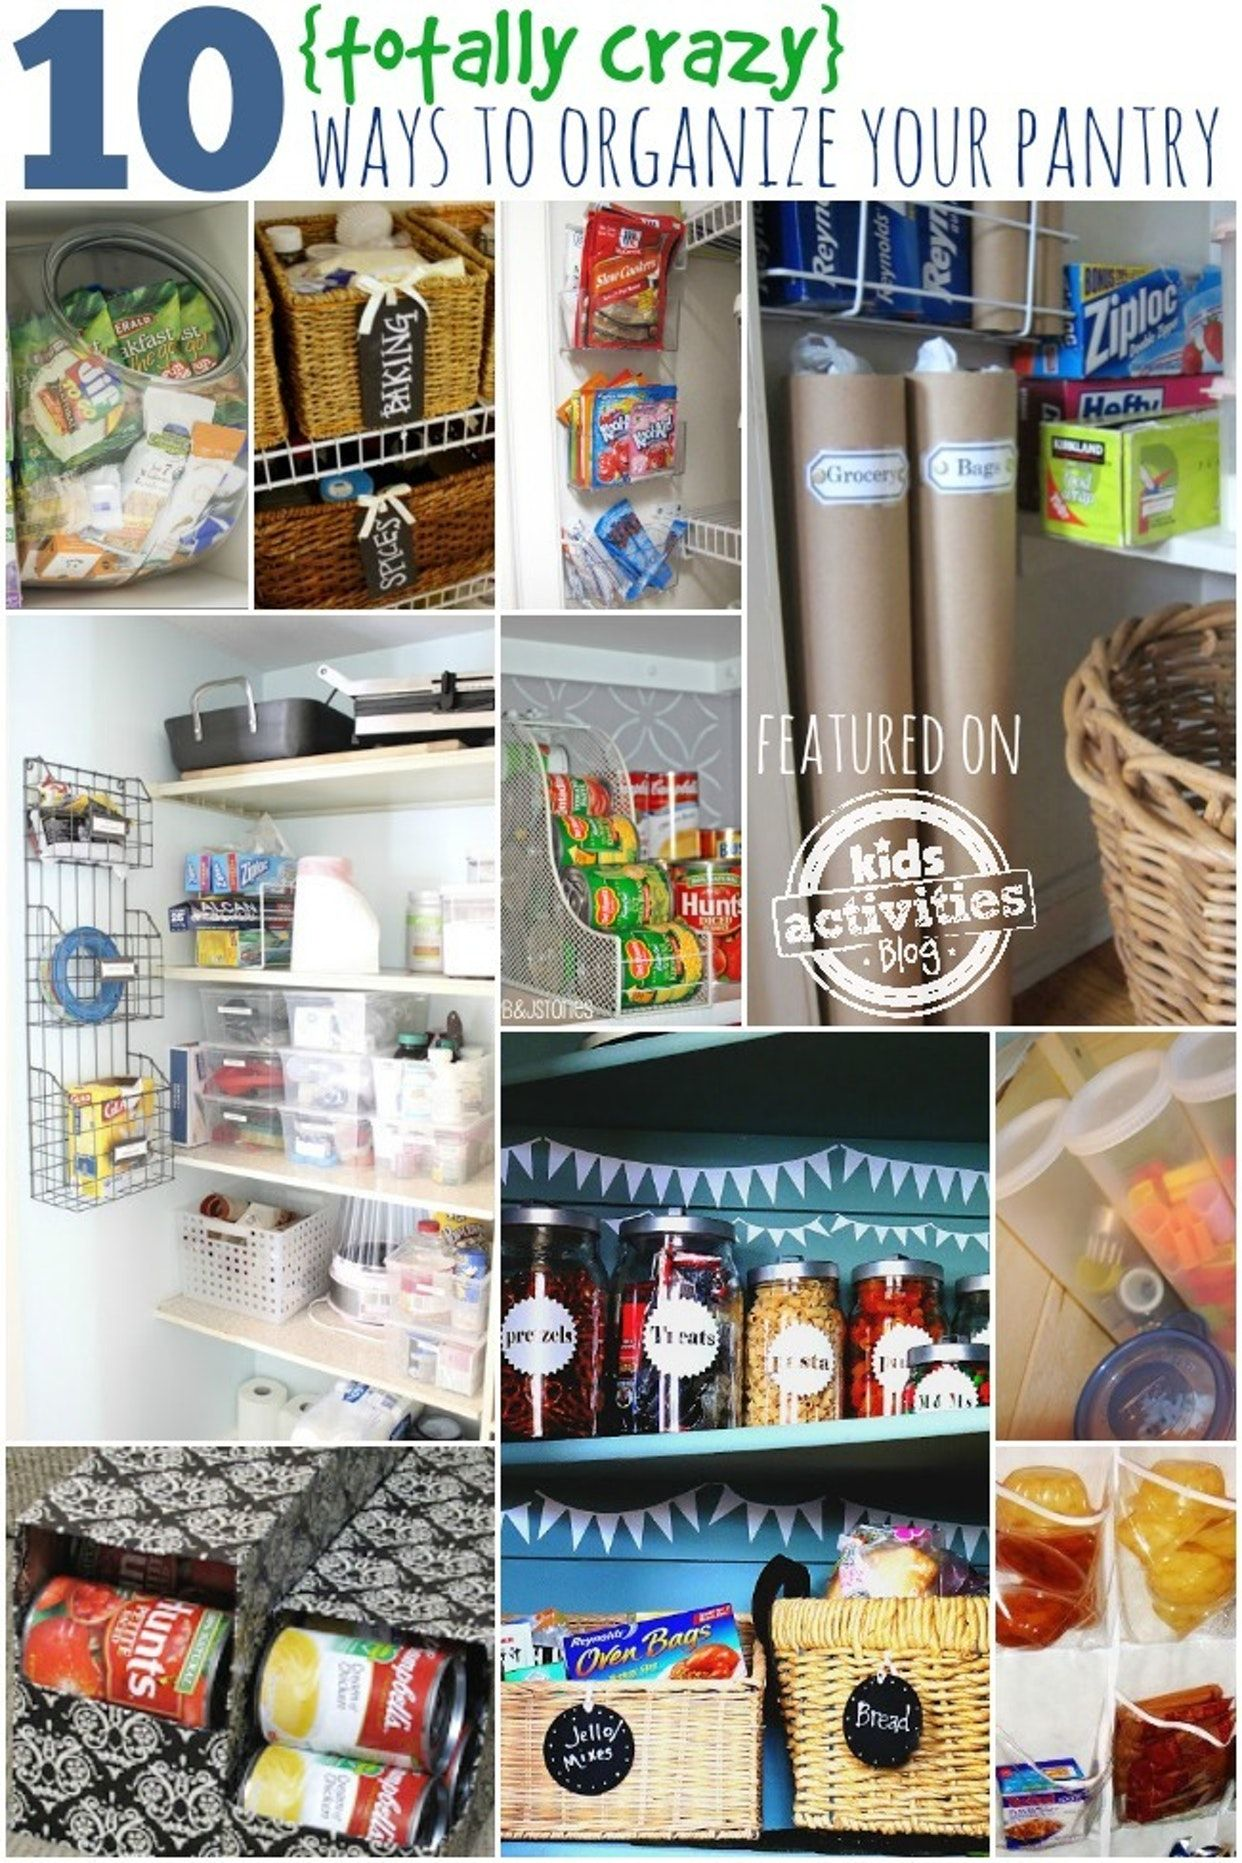 10 unconventional ways to organize your pantry organization organization hacks kids on kitchen organization no pantry id=12976